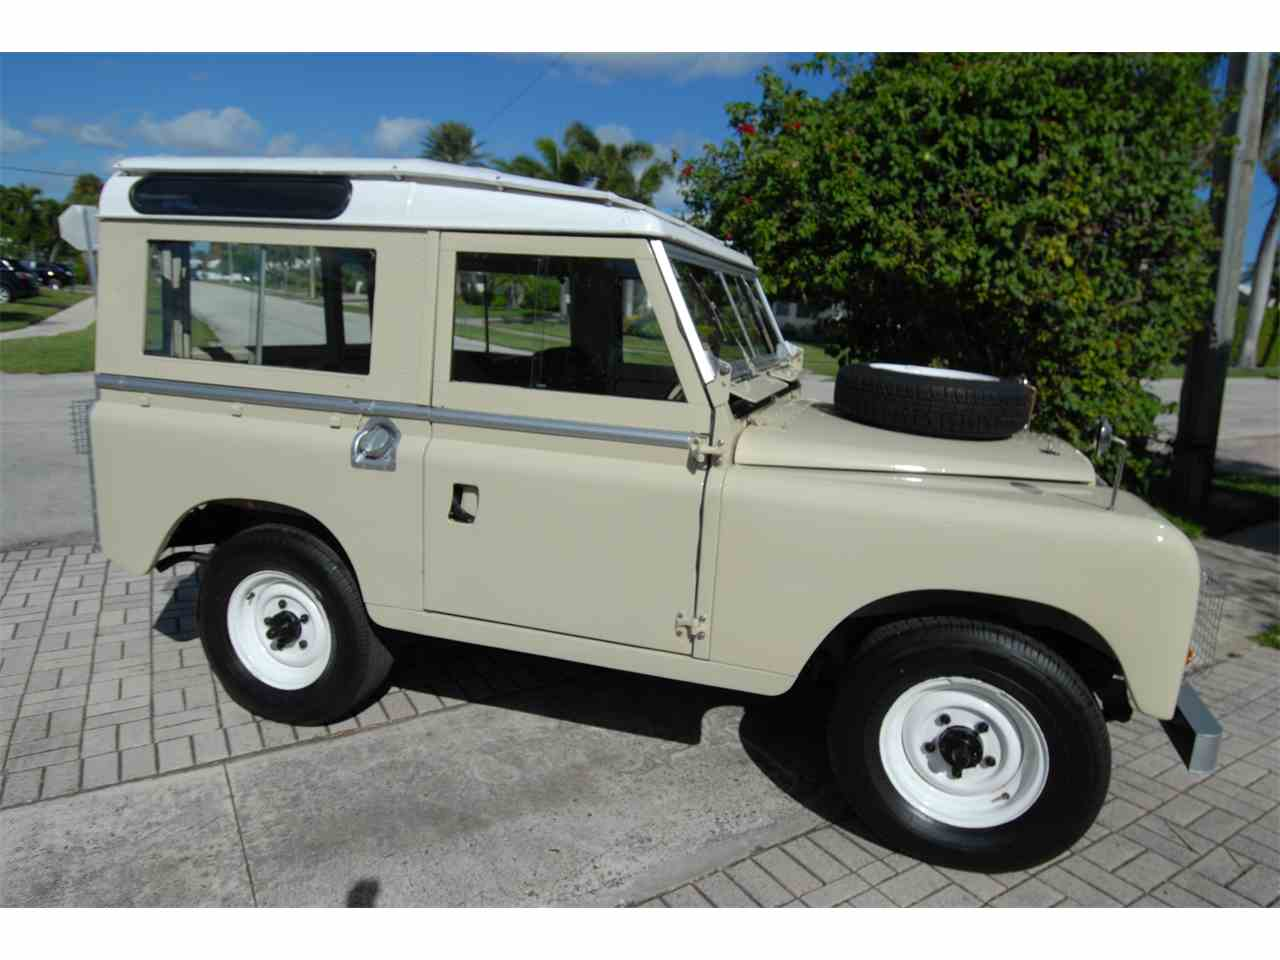 hse rover for boating forum attachment wanted sport landrover sale and florida the trailers hull range images attached land truth fishing trucks